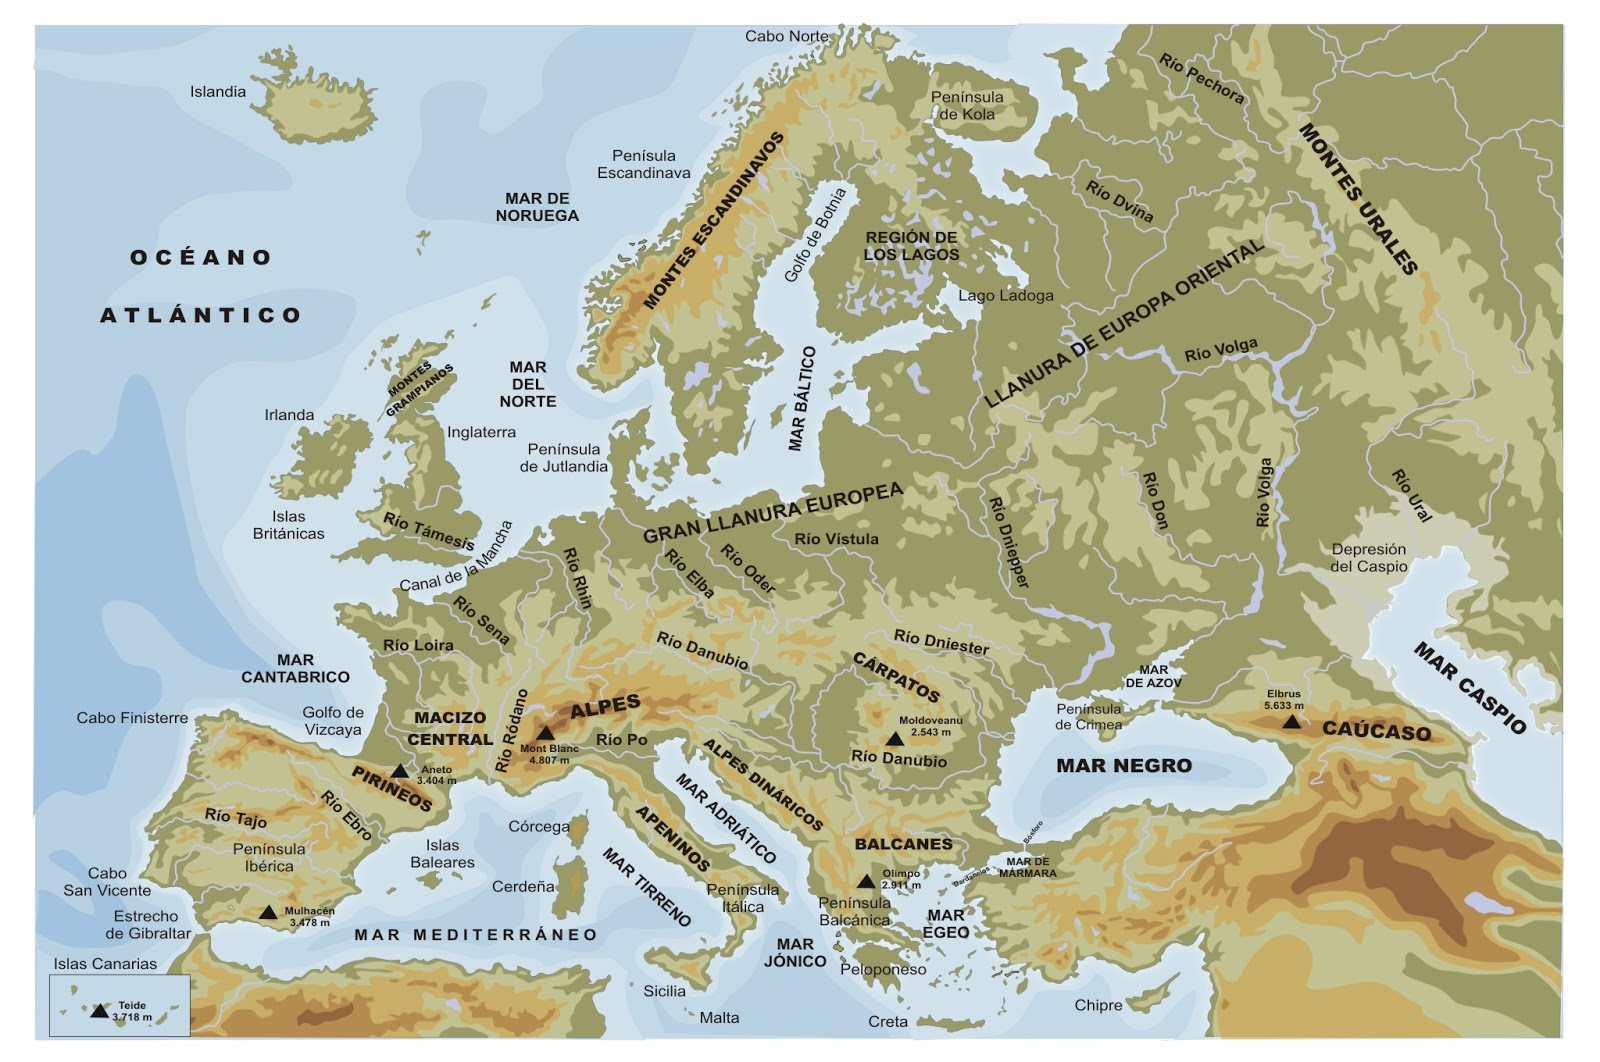 Paula 39 s Geography Blog Physical map of Europe